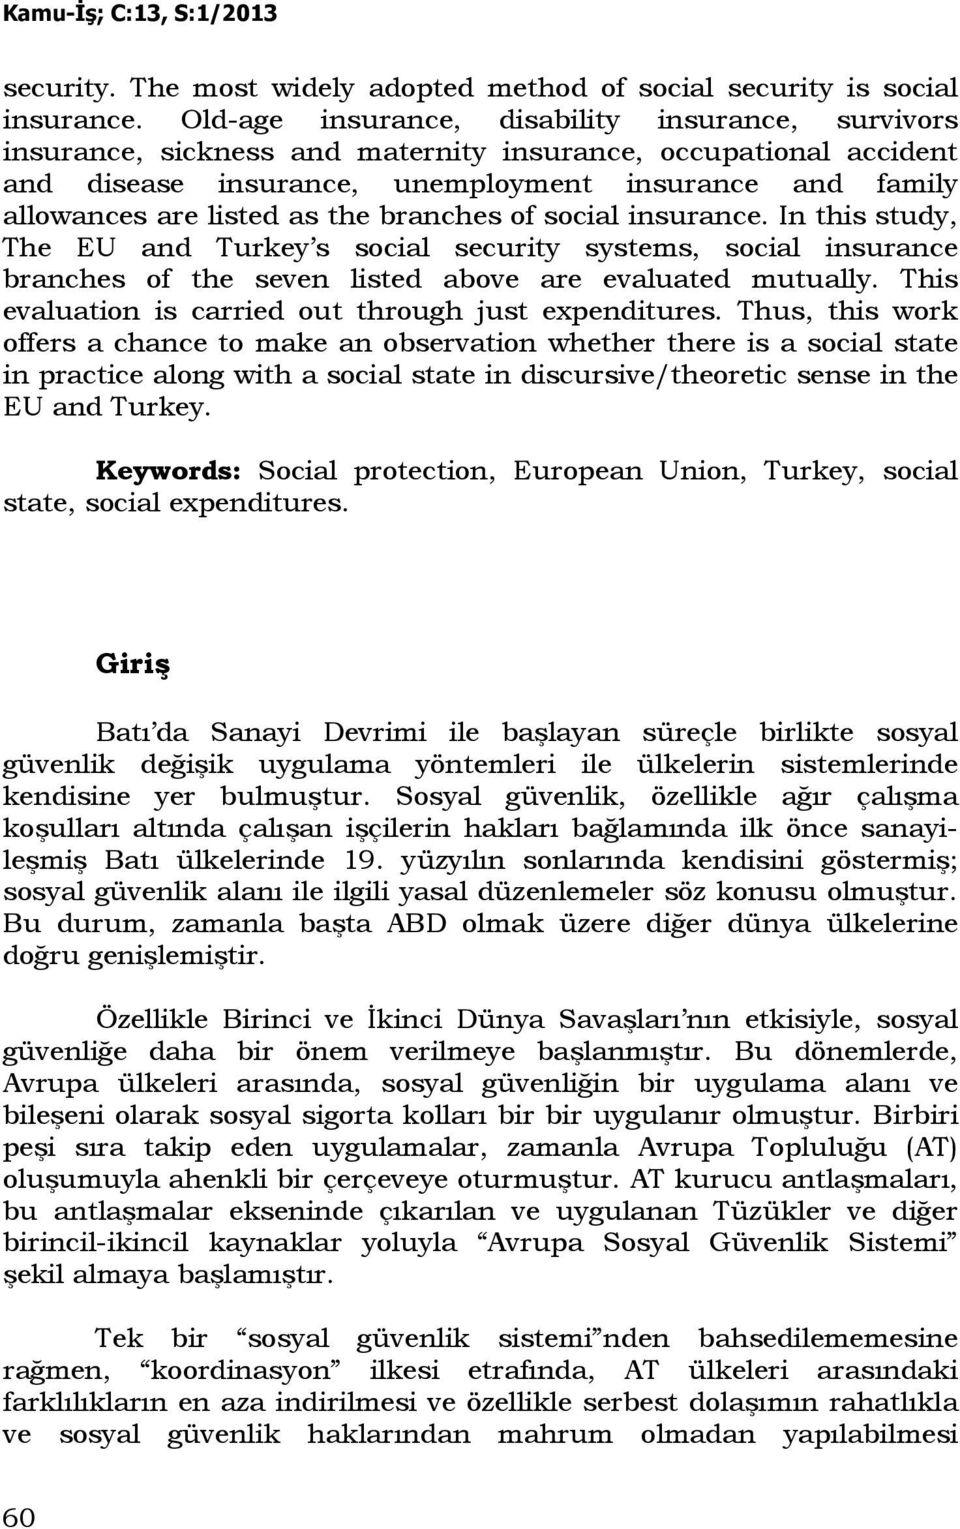 the branches of social insurance. In this study, The EU and Turkey s social security systems, social insurance branches of the seven listed above are evaluated mutually.